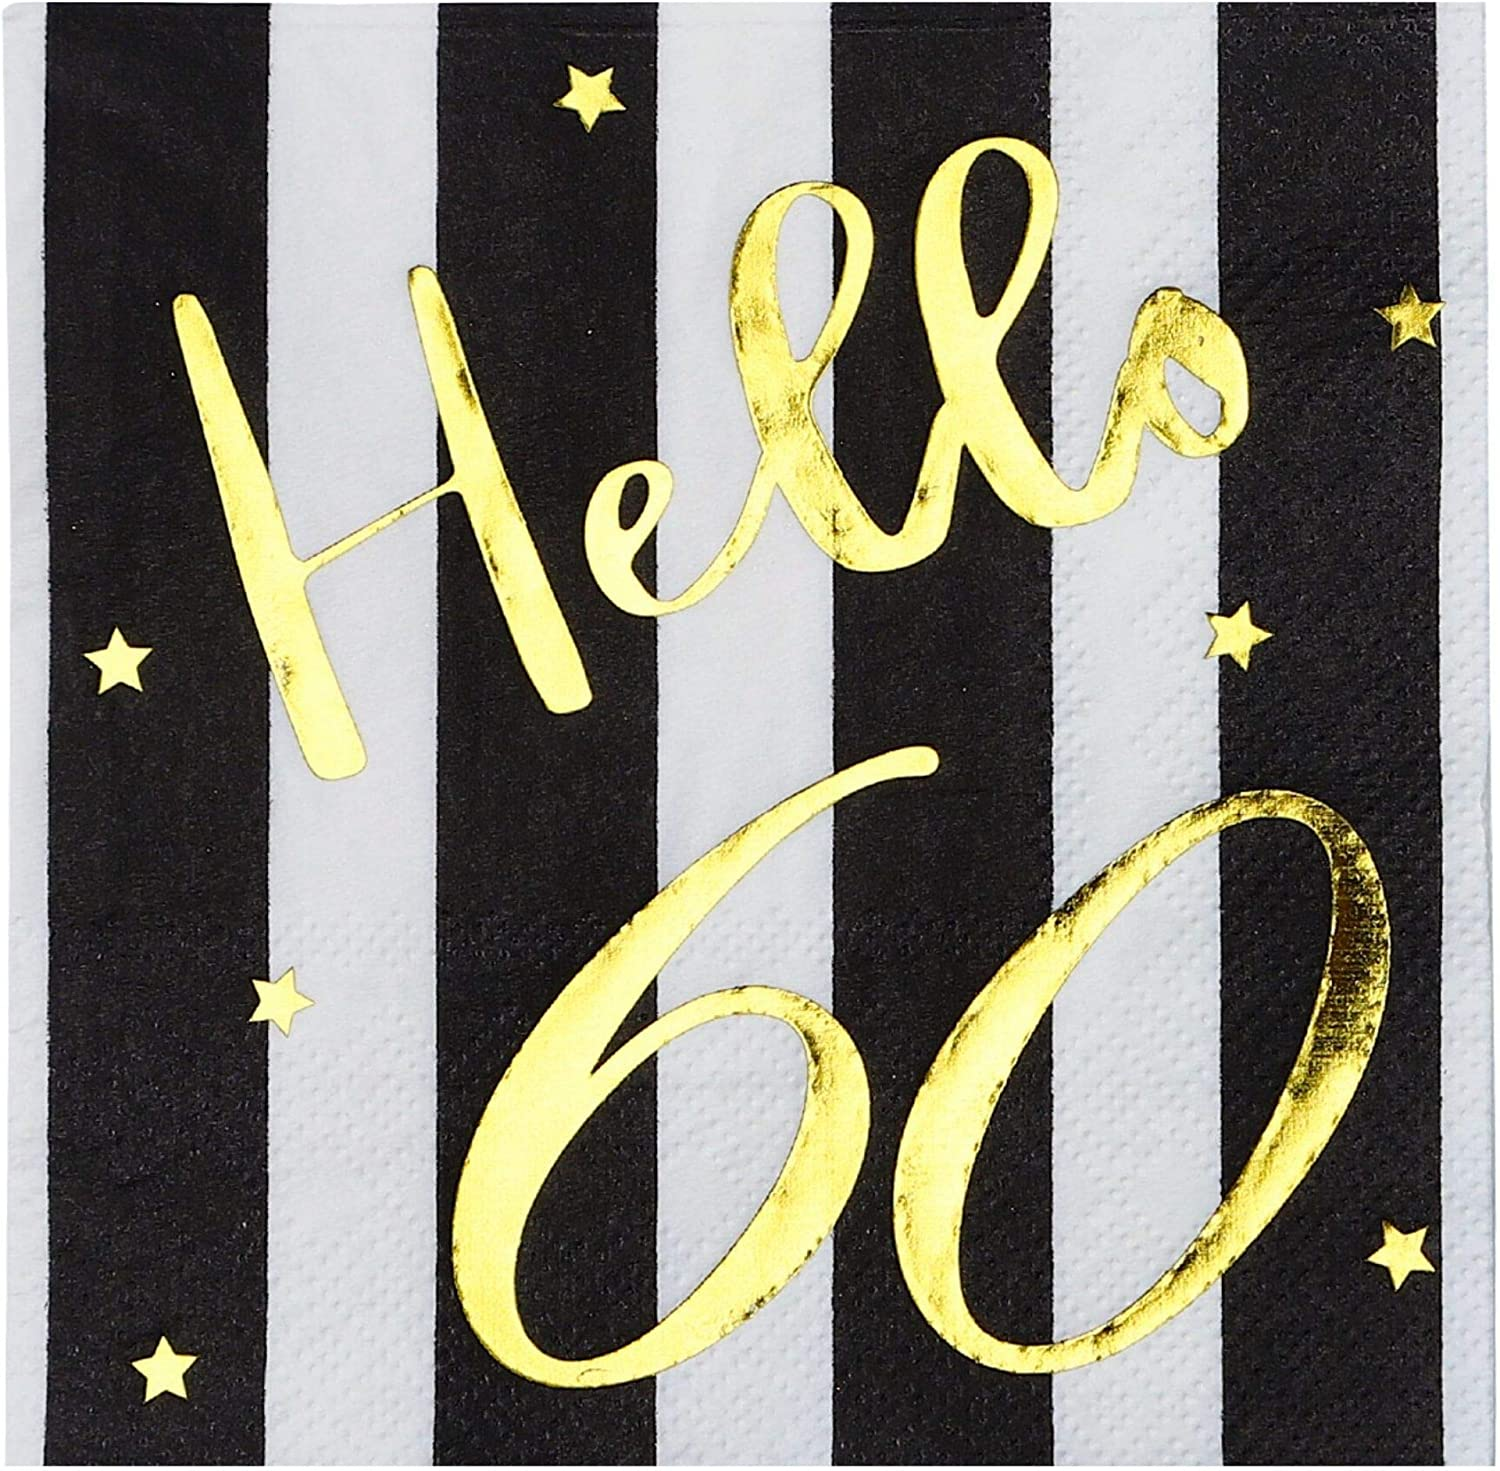 Hello 60 Cocktail Napkins - Happy 60th Birthday Decorations for Men Women | Folded 5x5 Inches Party Napkins | 3-Ply Paper Beverage Napkins, Black and Gold 60th Birthday Napkins, Wedding Anniversary